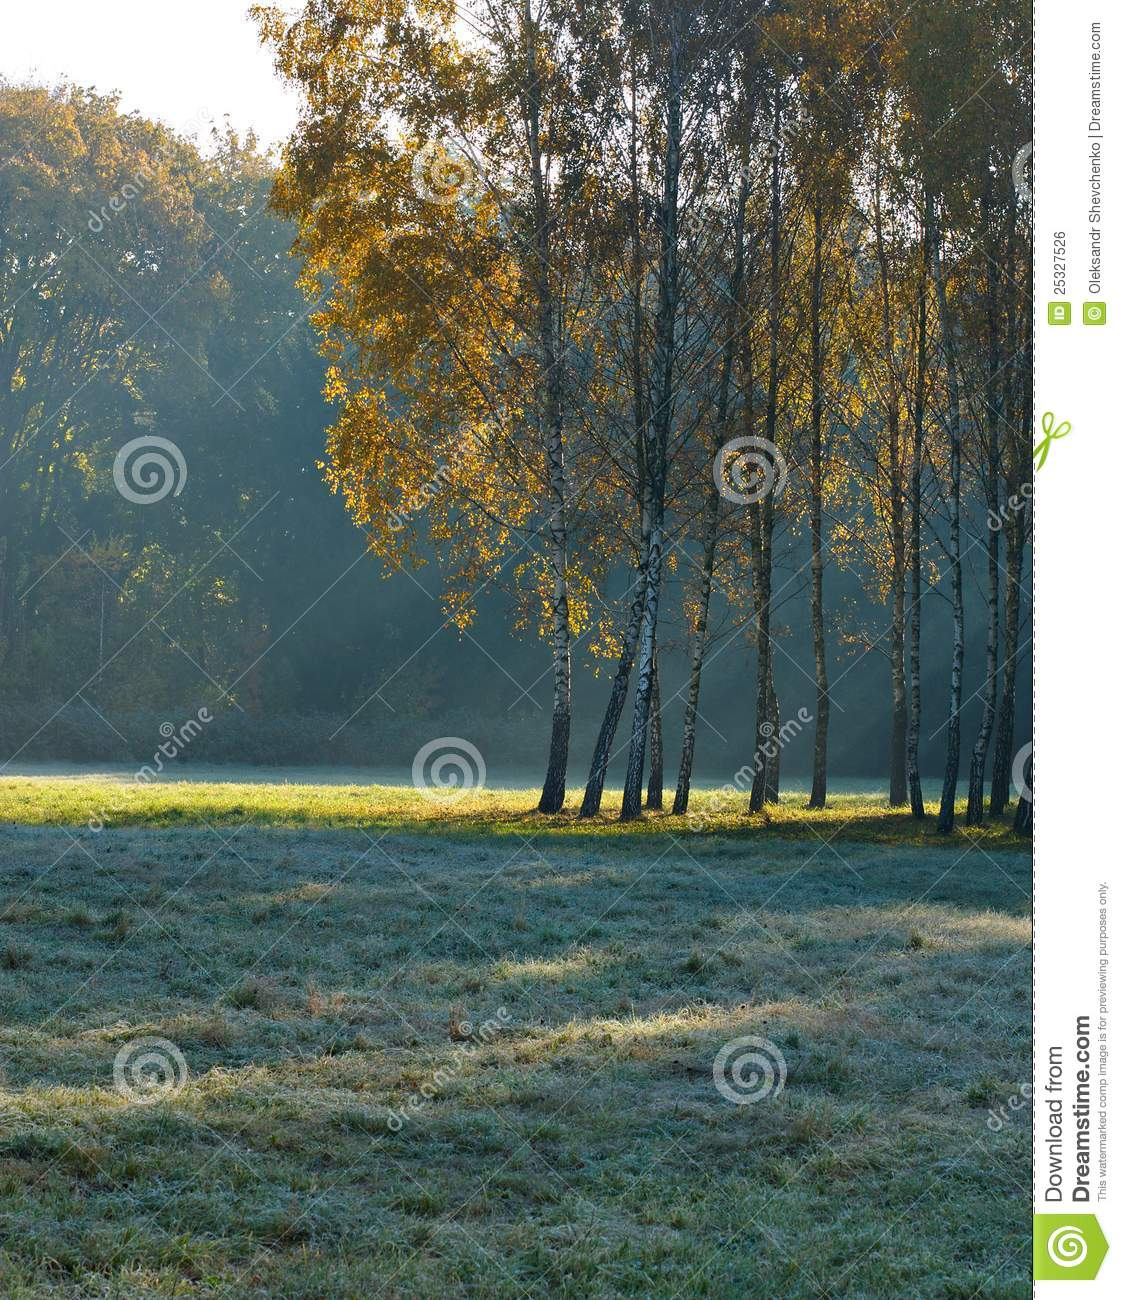 Beautiful Morning Landscape With Birch Trees Royalty Free Stock Image